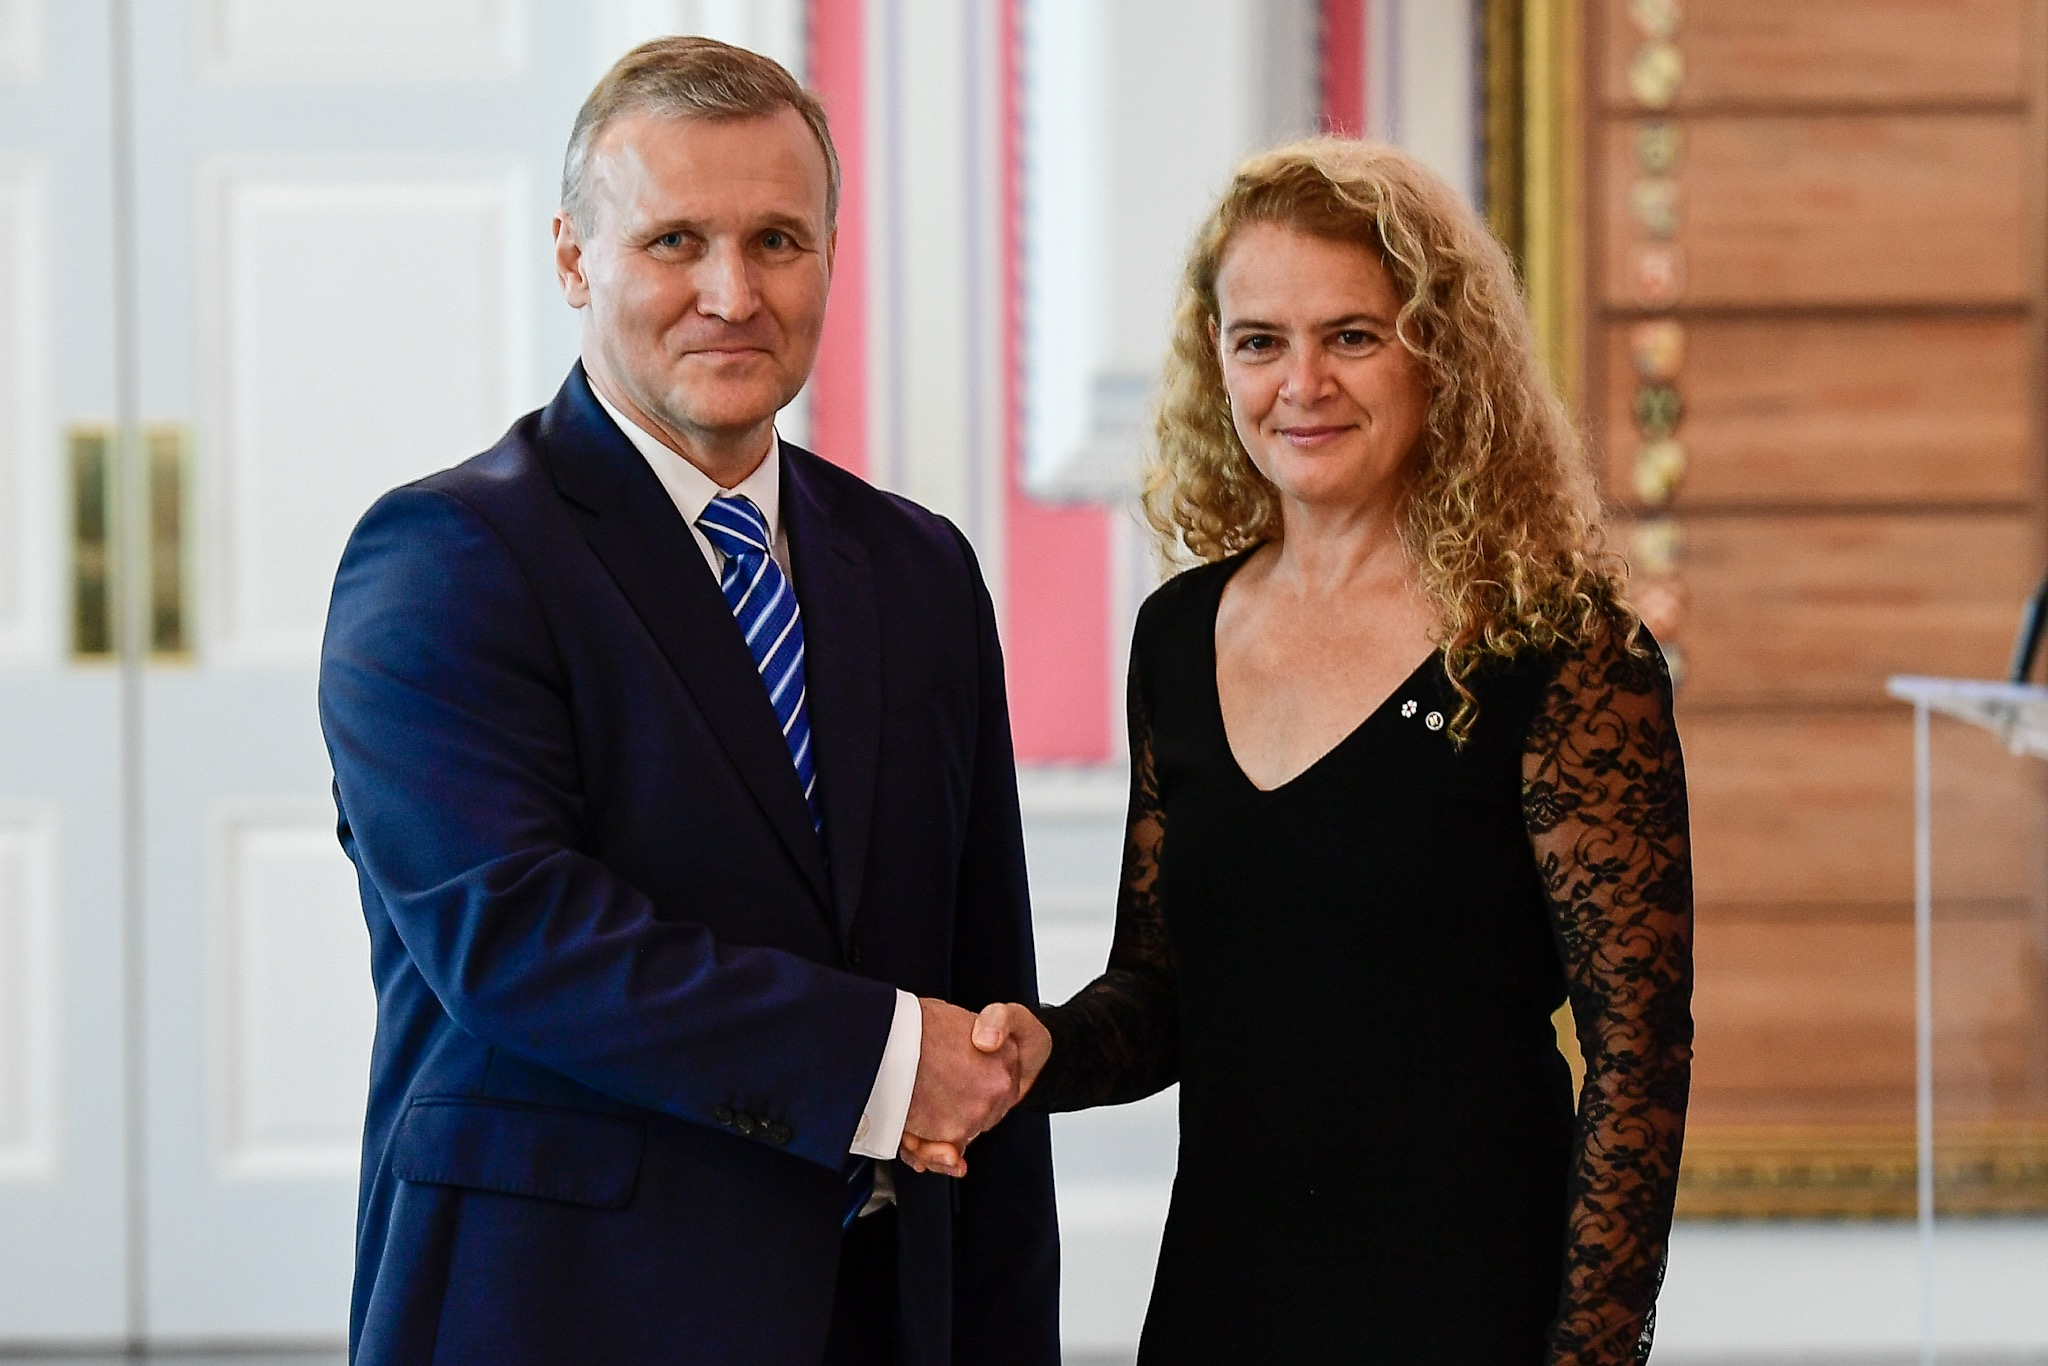 The governor general then received the letters of credence of His Excellency Toomas Lukk, Ambassador of the Republic of Estonia.